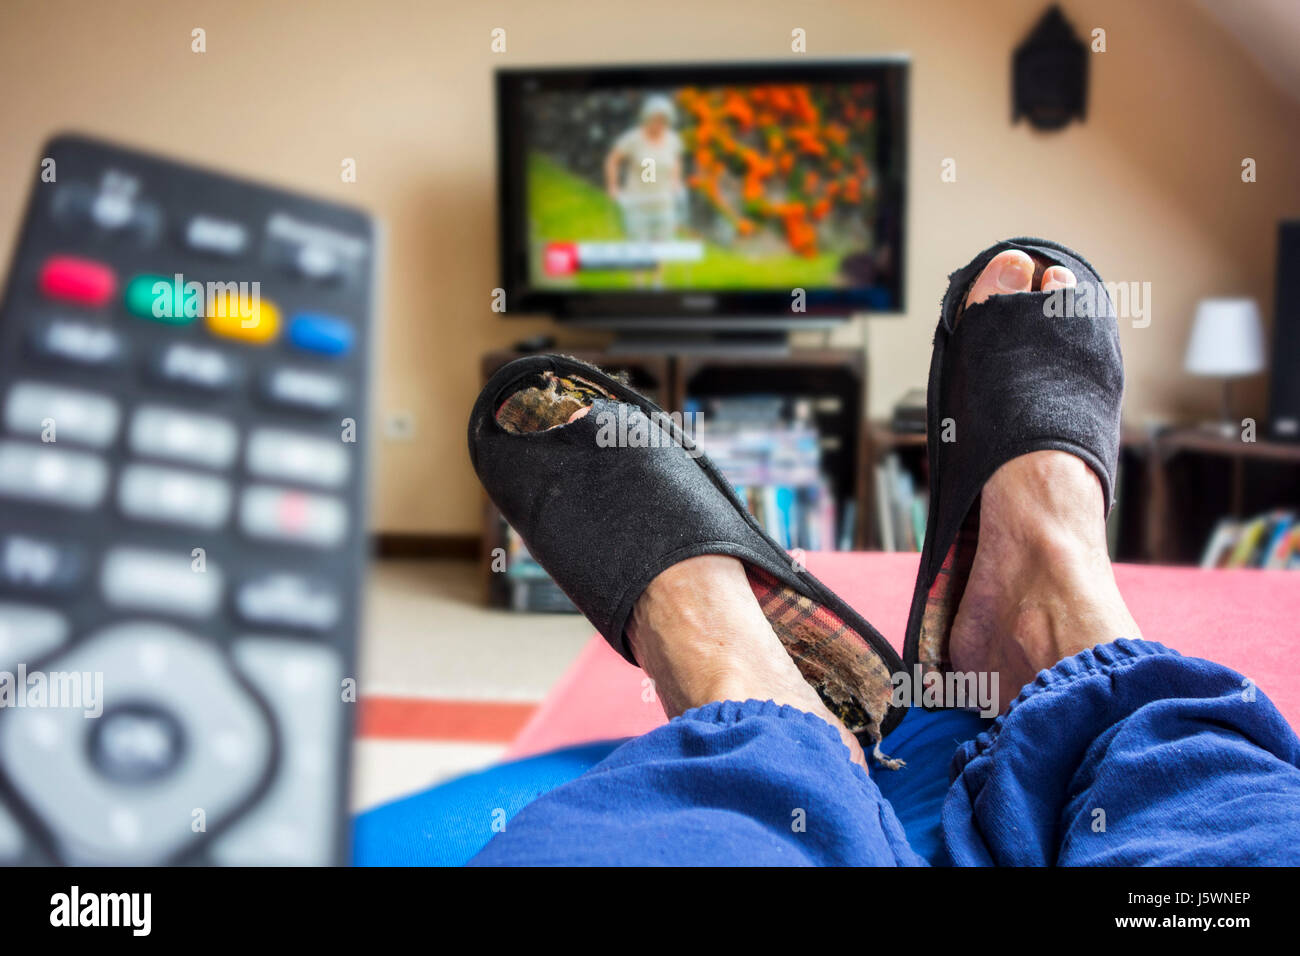 remote-control-and-couch-potato-lazy-man